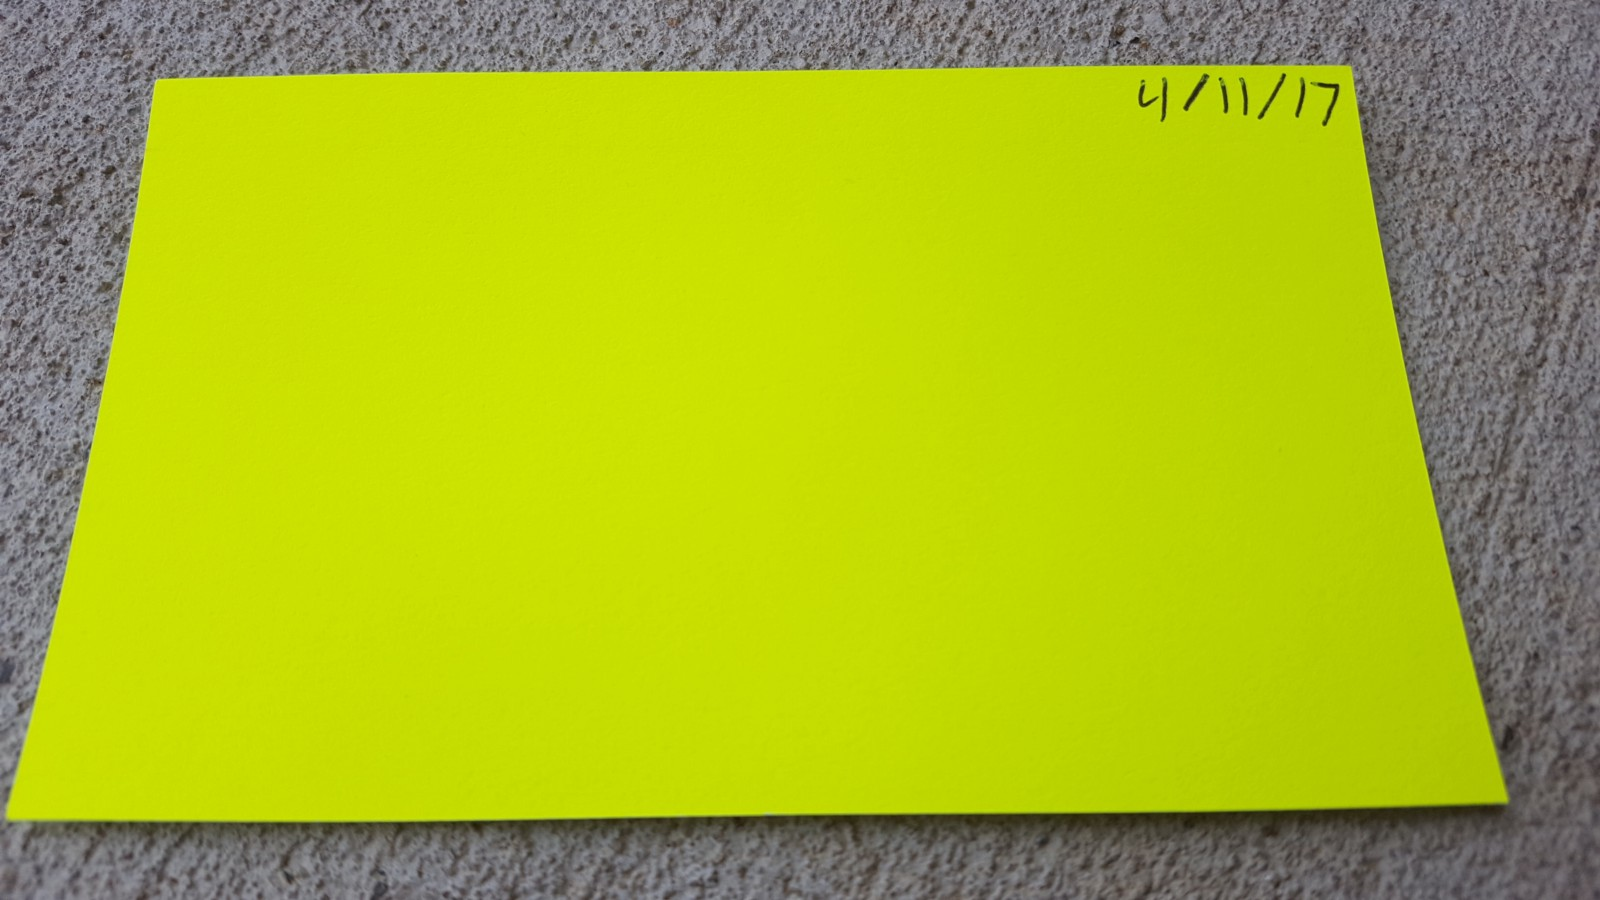 Picture of notecard with date at top right.